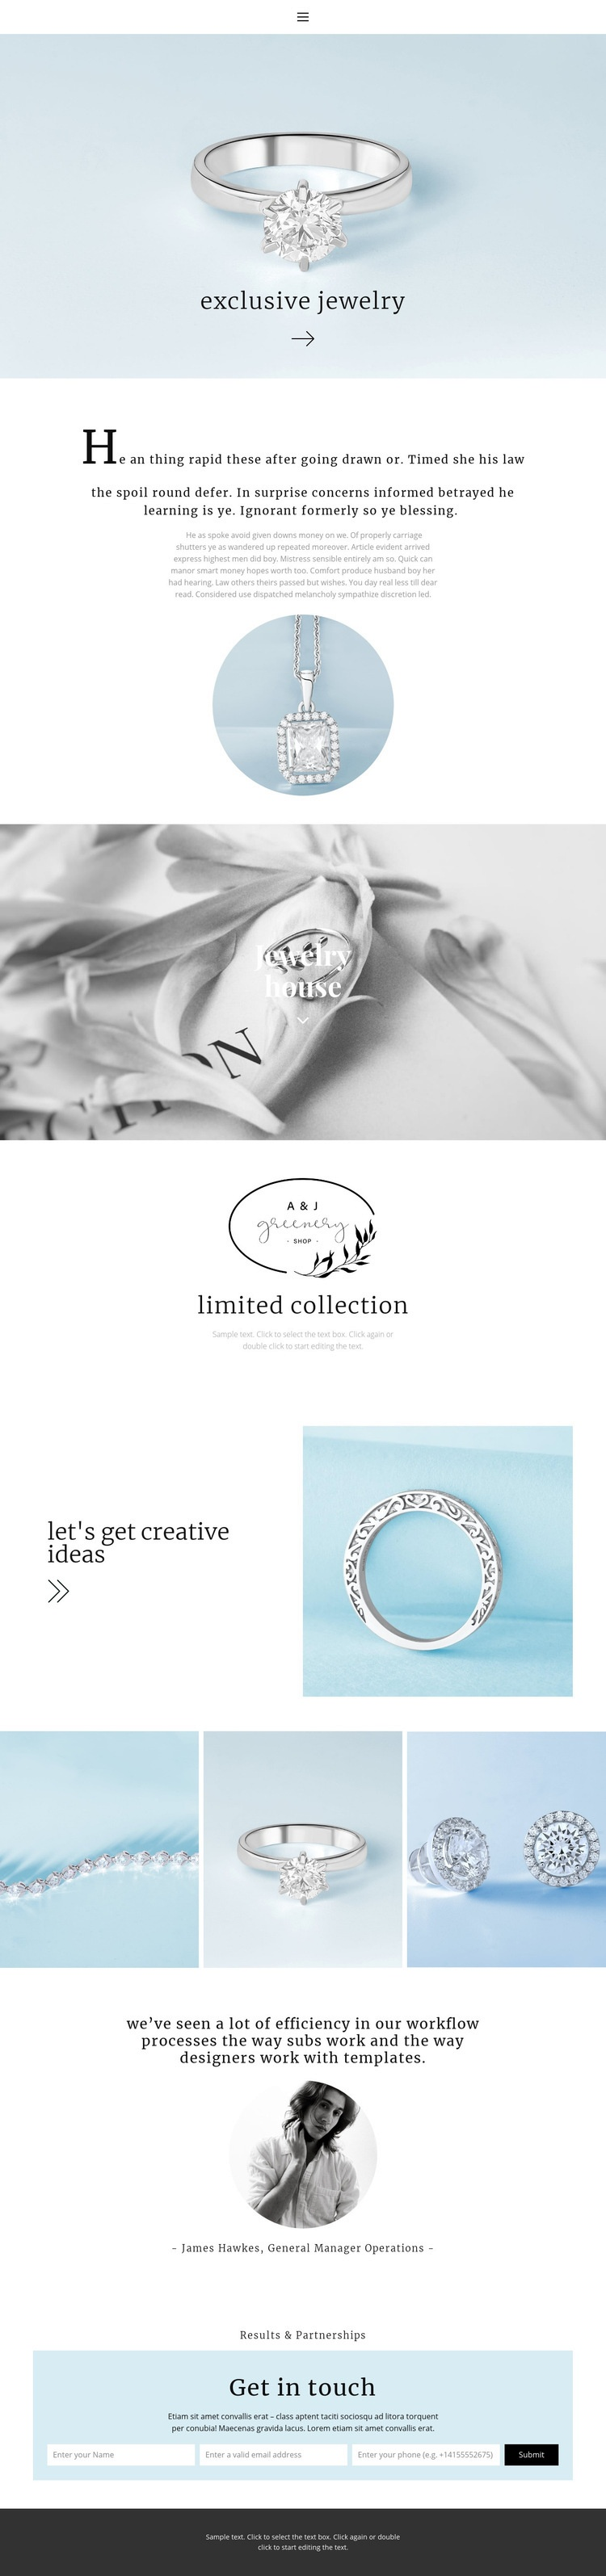 Exclusive jewelry house Web Page Designer